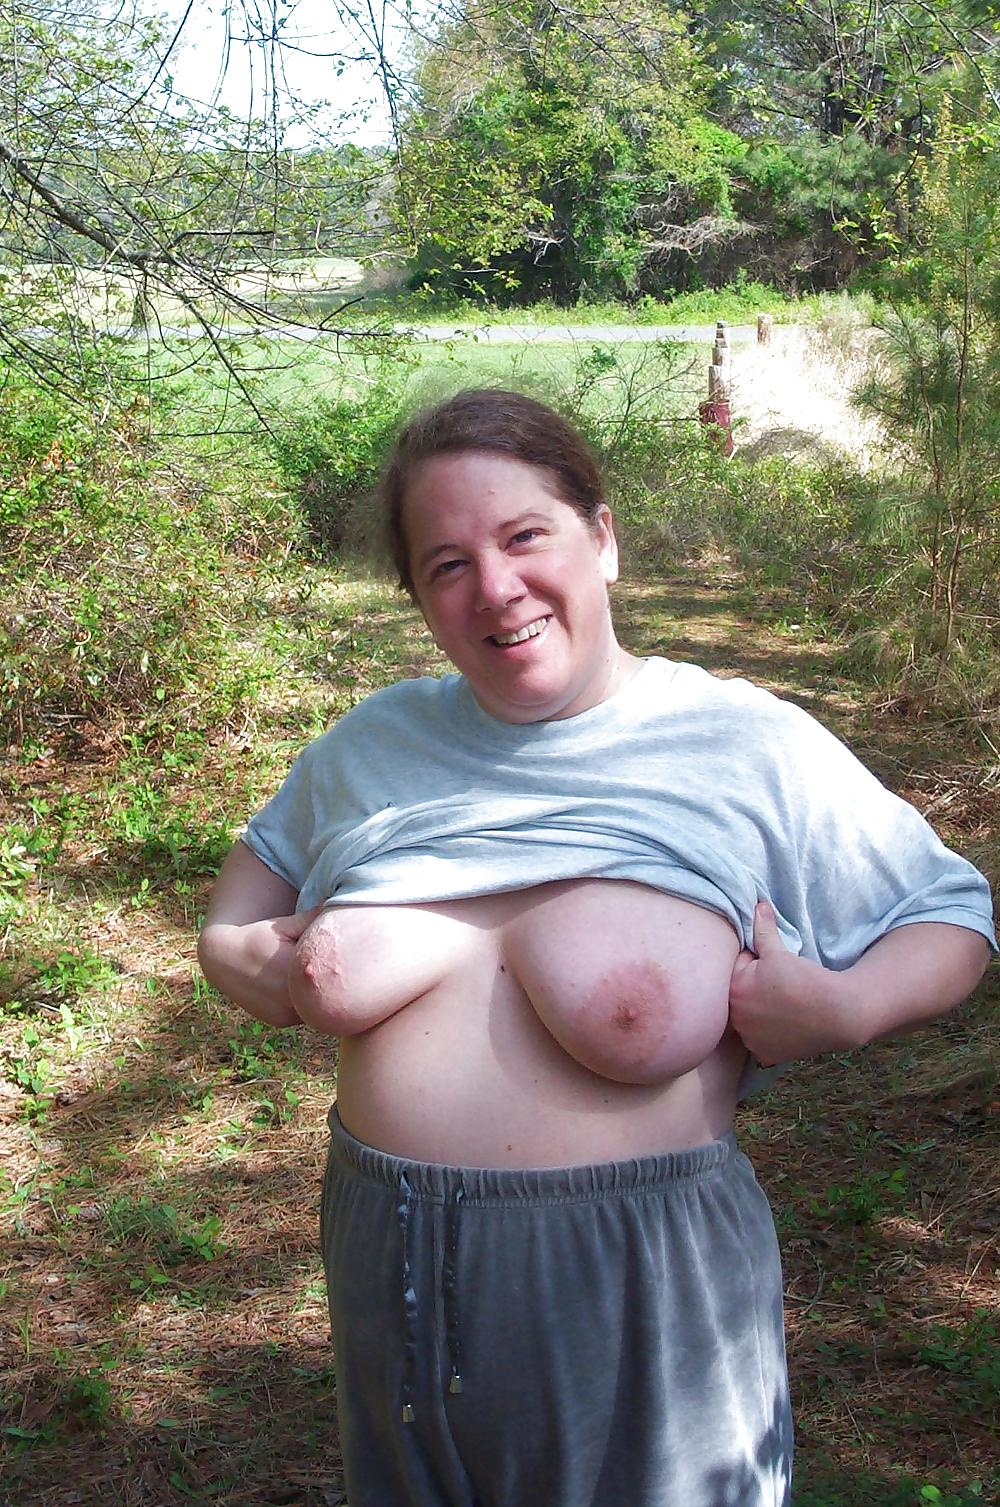 chubby Outdoor webcam beach